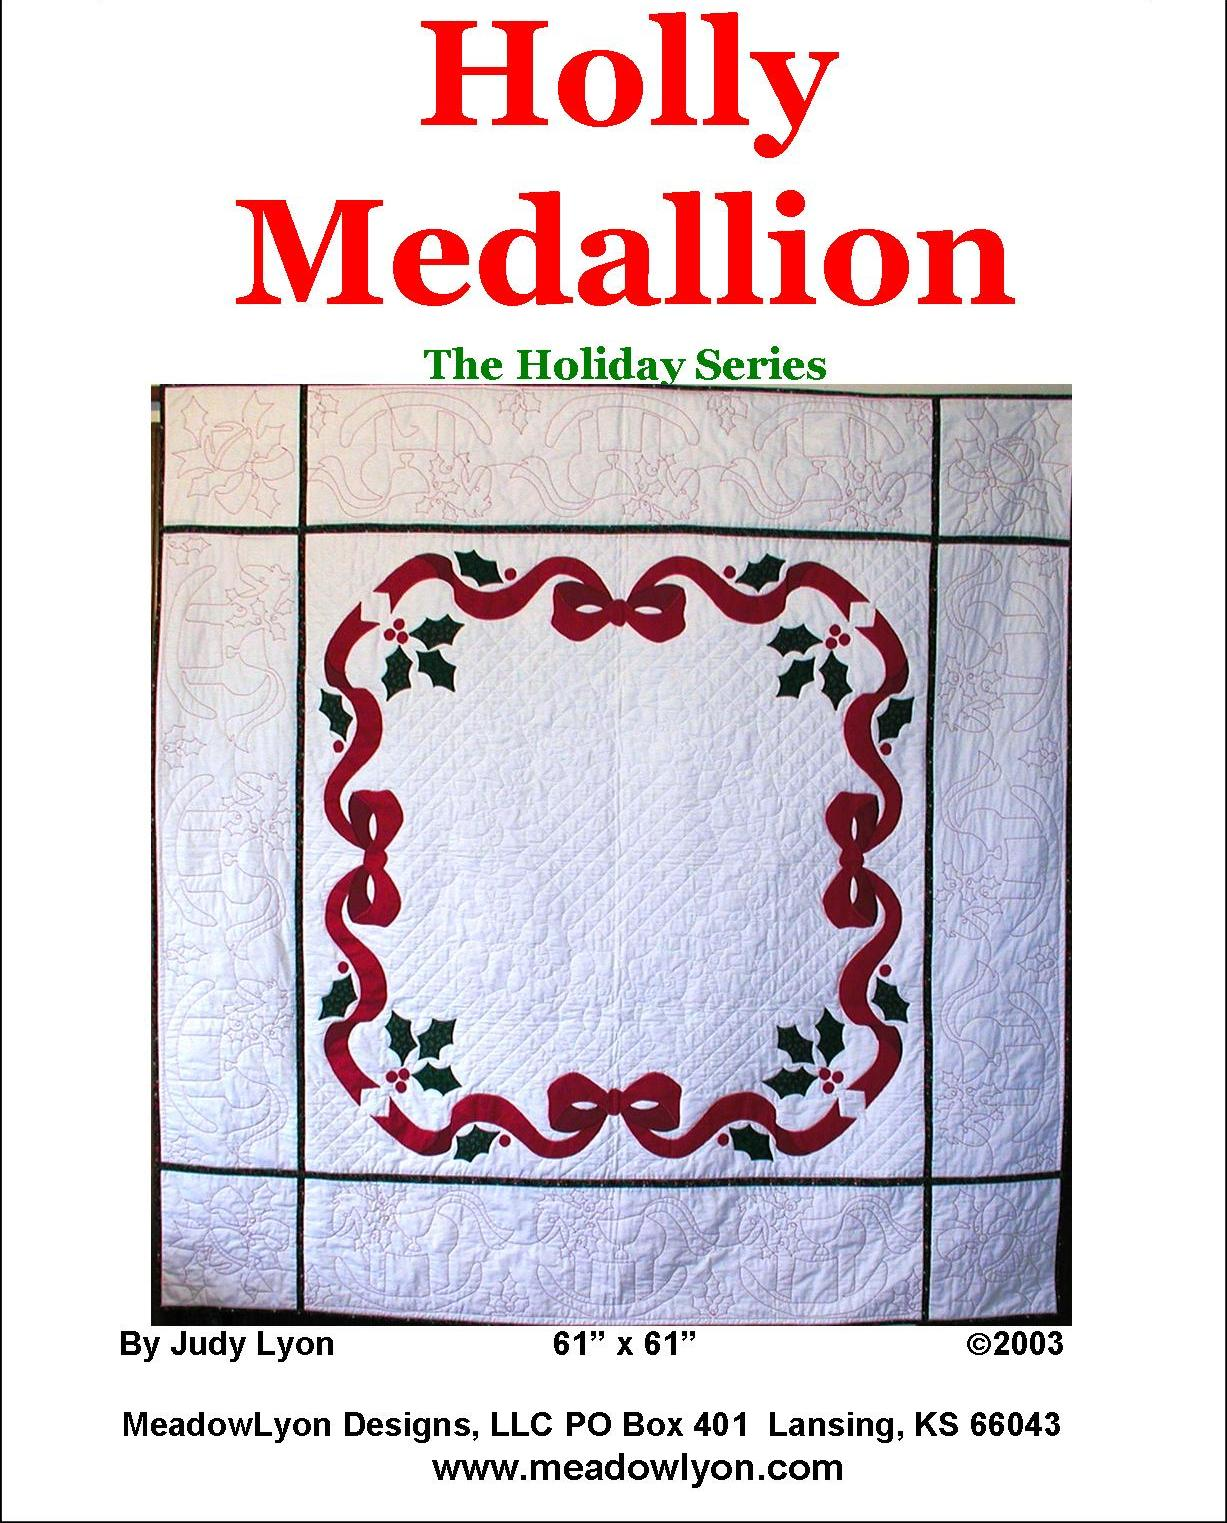 holly-medallion-cover-2